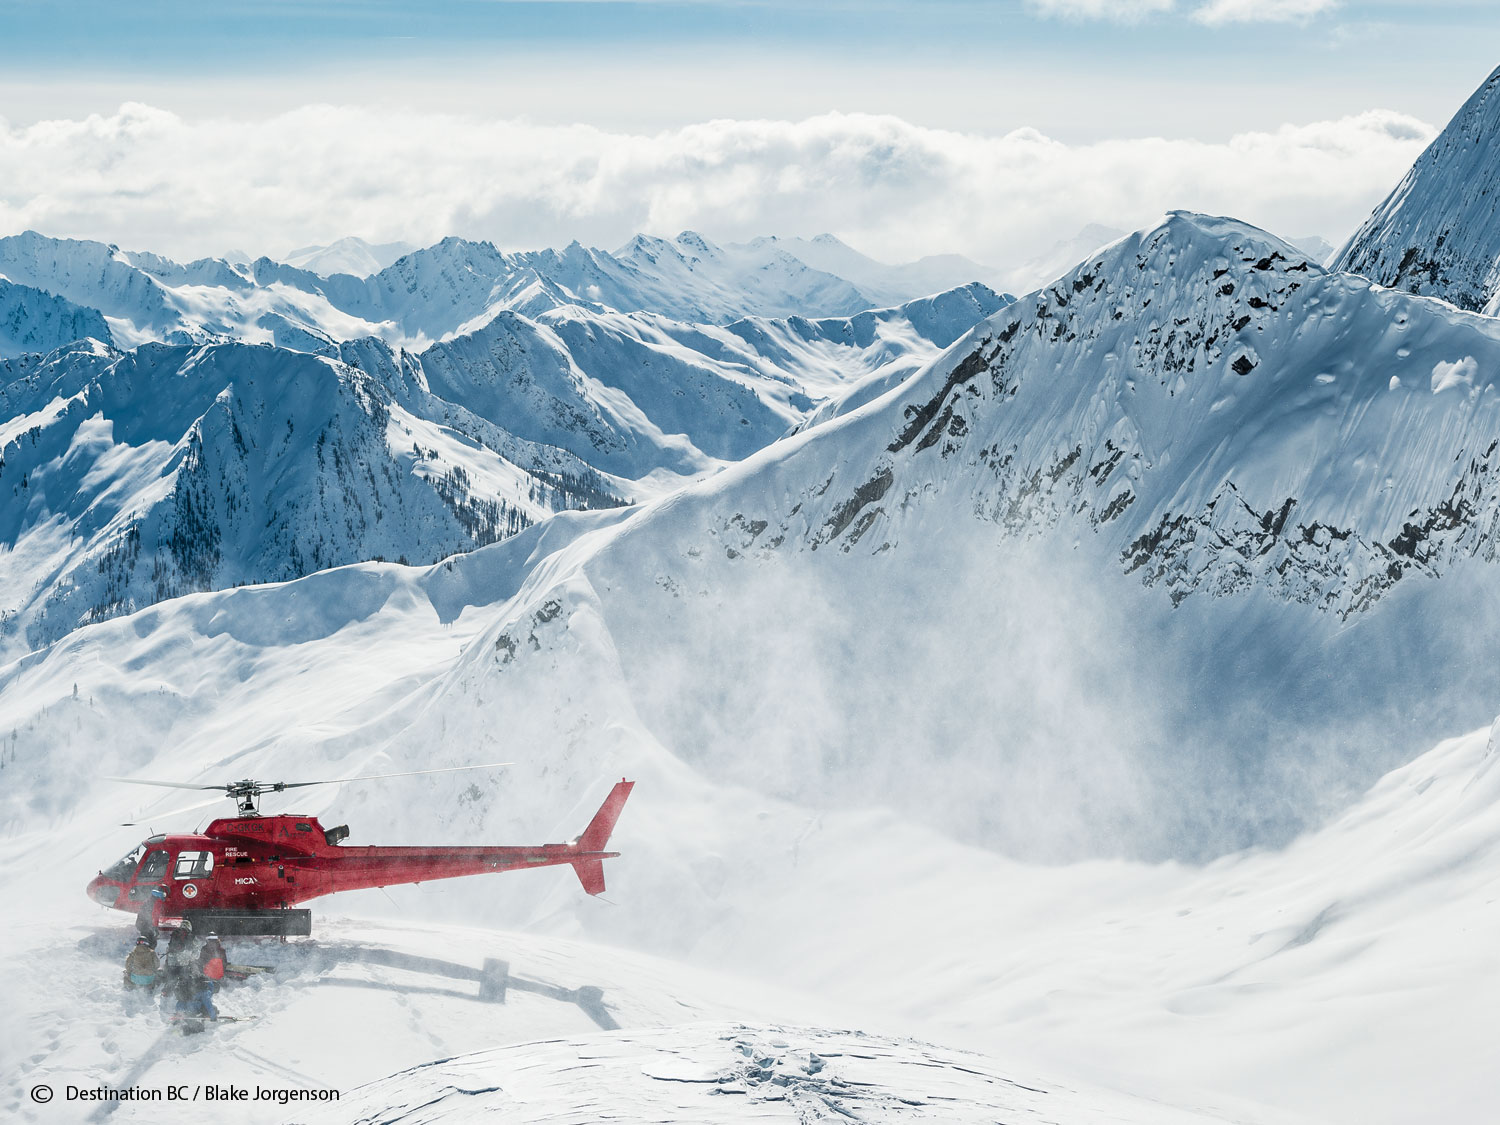 Heli Skiing at the Birthplace of it all